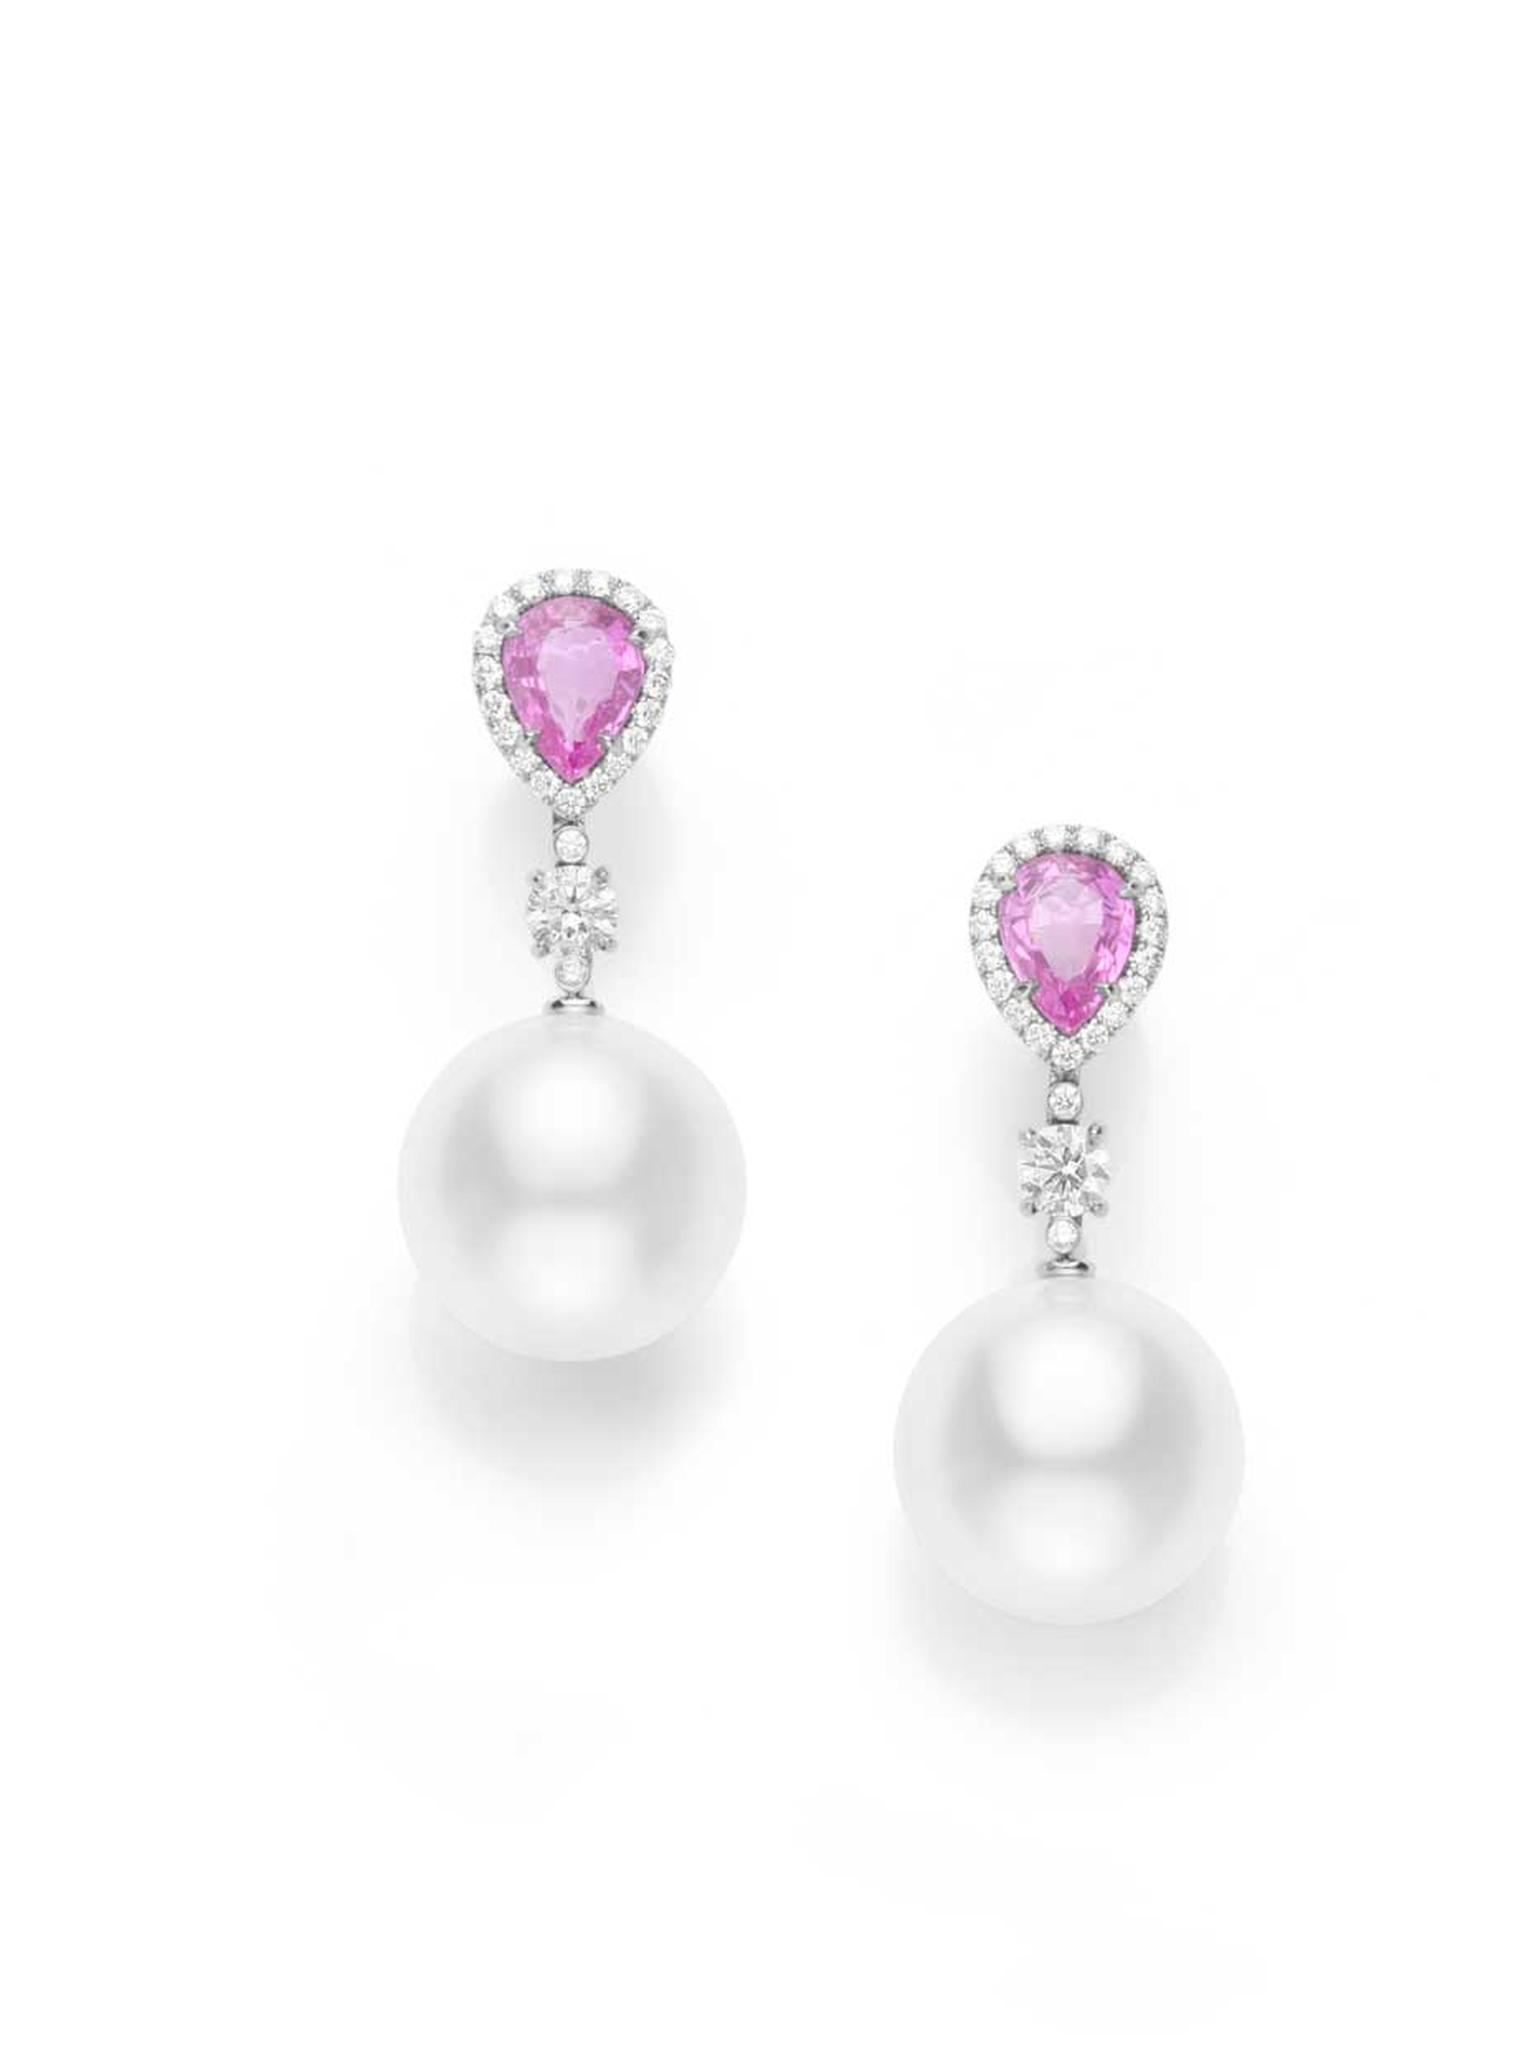 Mikimoto Color Prestige collection earrings featuring a pair of pink sapphires and pearls connected by a trail of brilliant-cut diamonds